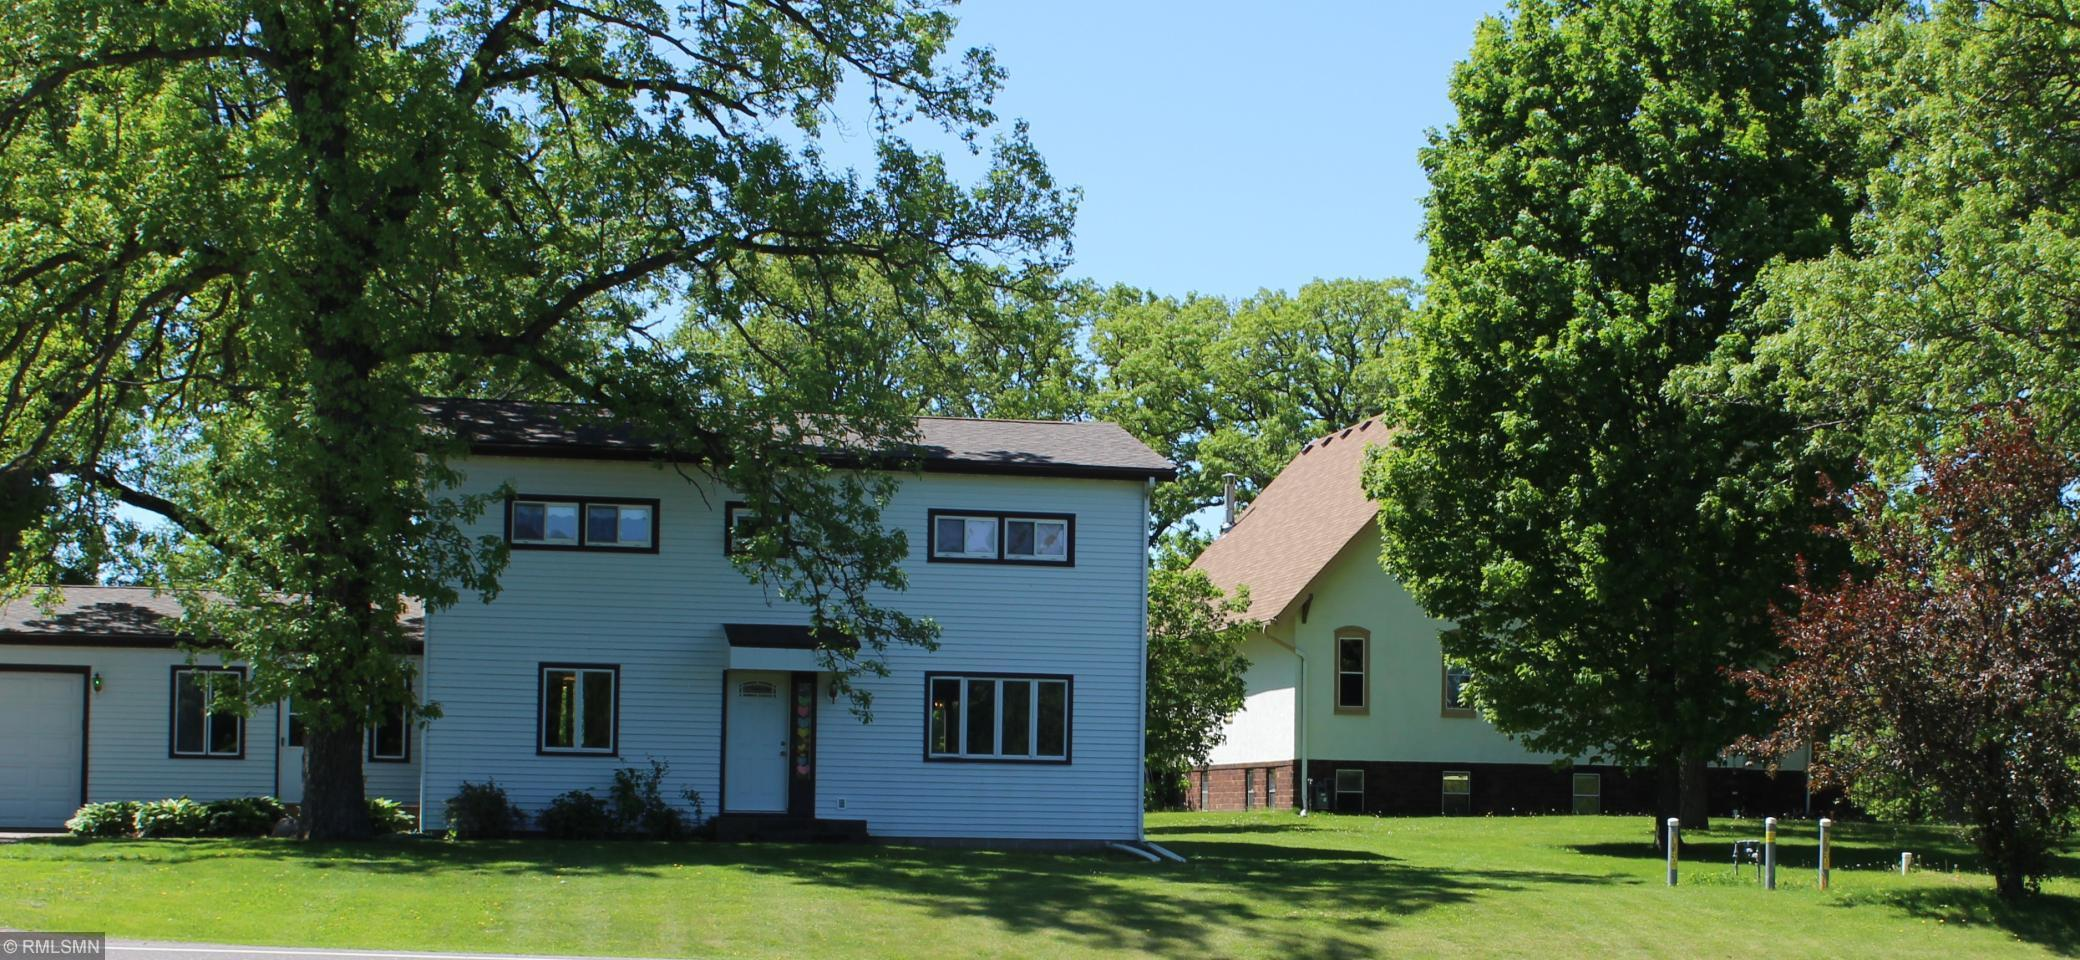 38059 Helium Street NW Property Photo - Dalbo, MN real estate listing